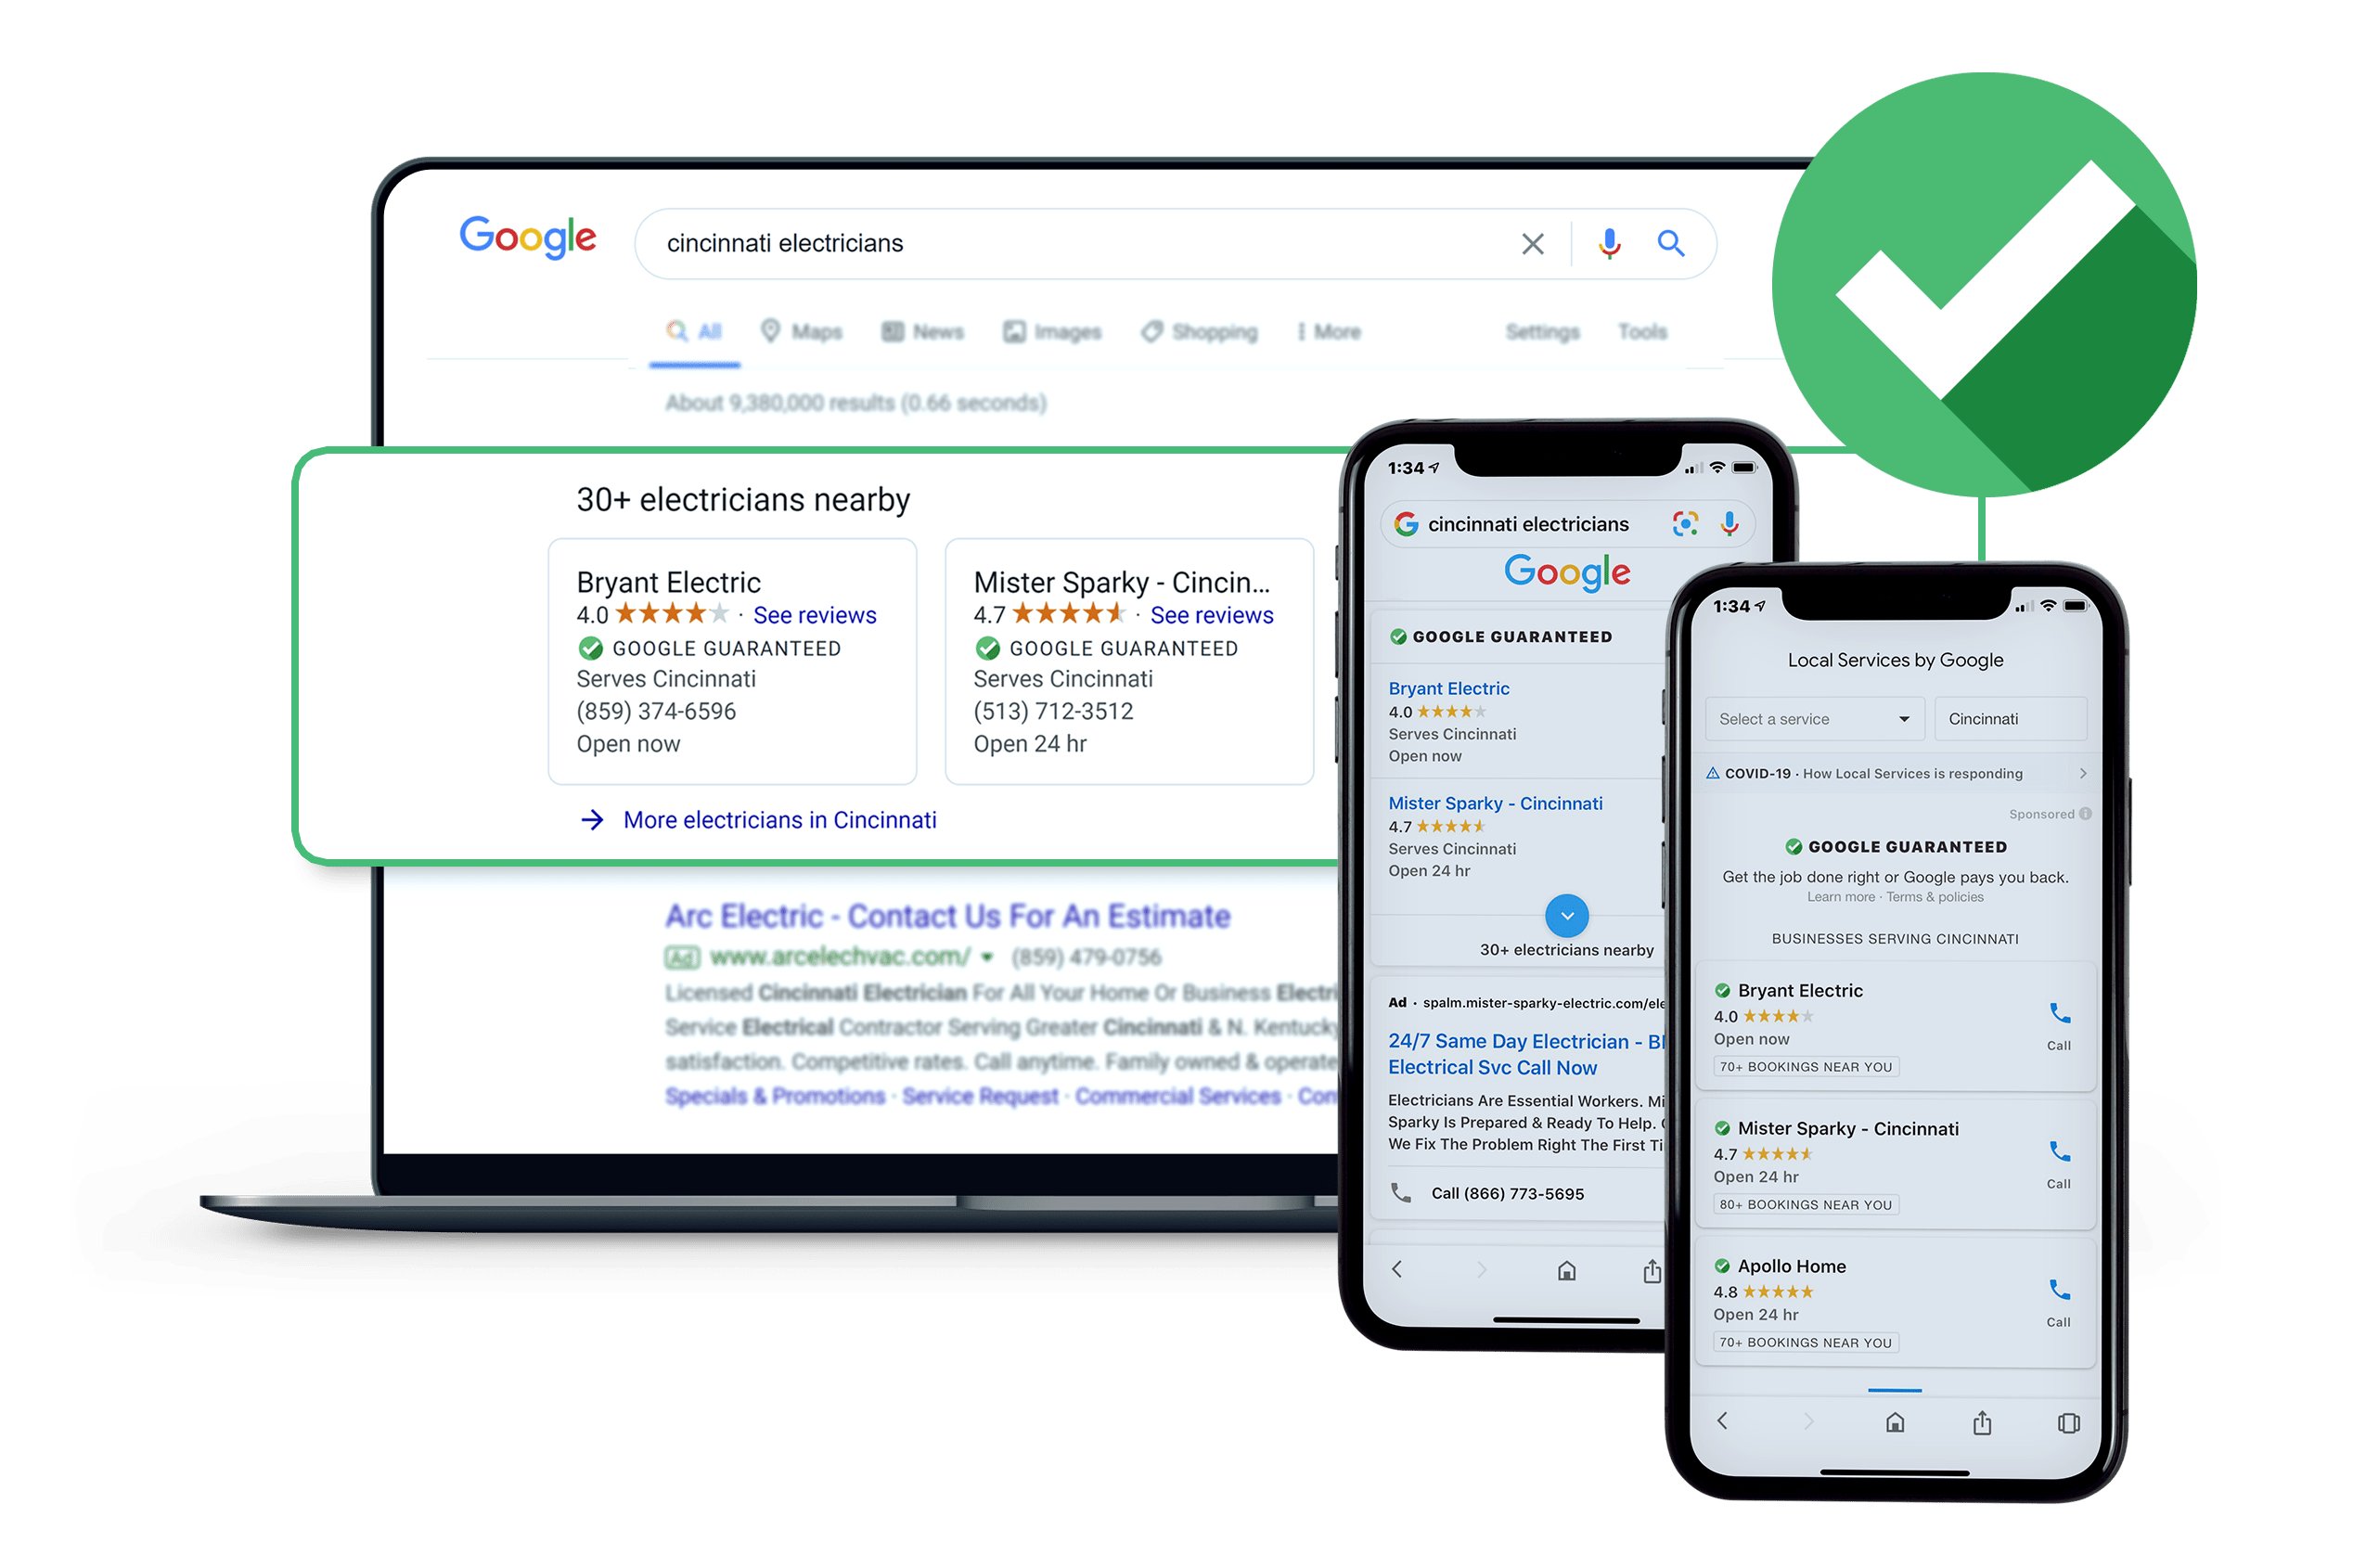 Googleguarantee Graphic